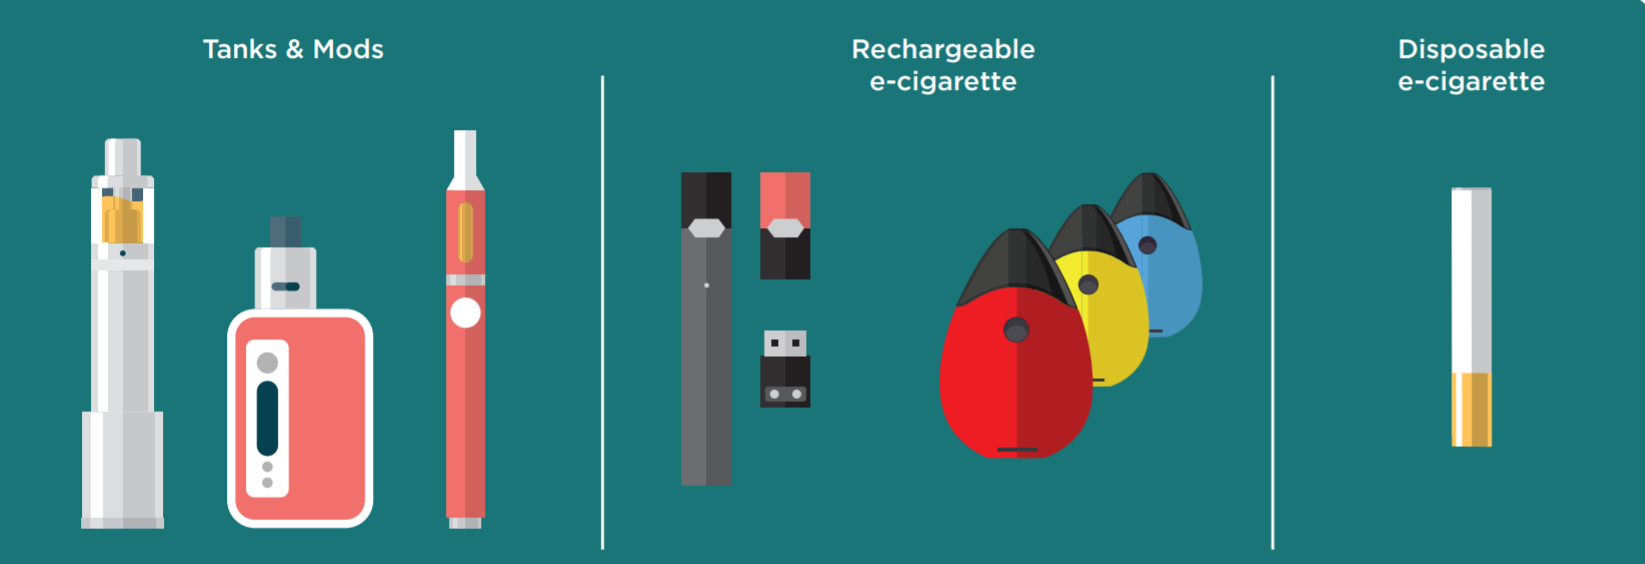 types of e-cigarettes